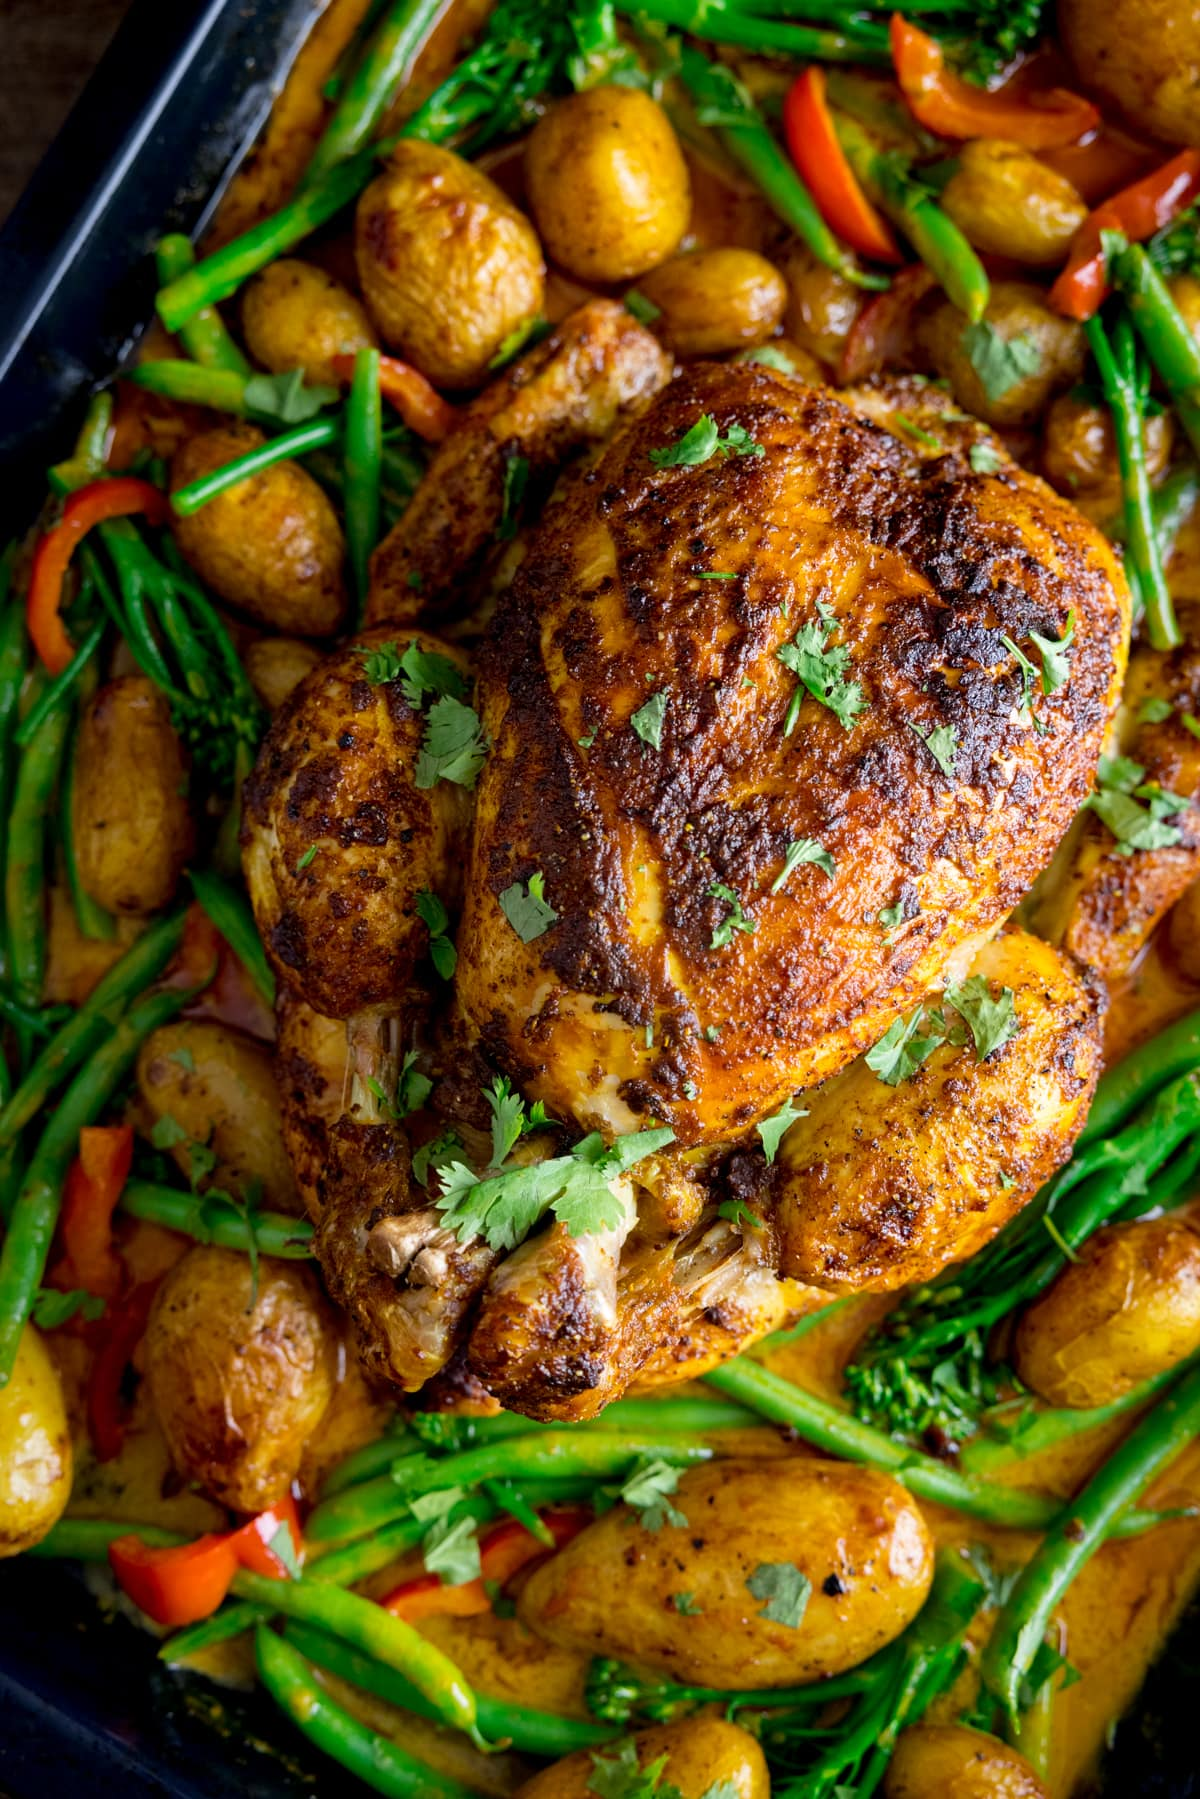 Overhead of a whole roast chicken in a baking tray with potatoes, peppers, green beans, broccoli and curry sauce